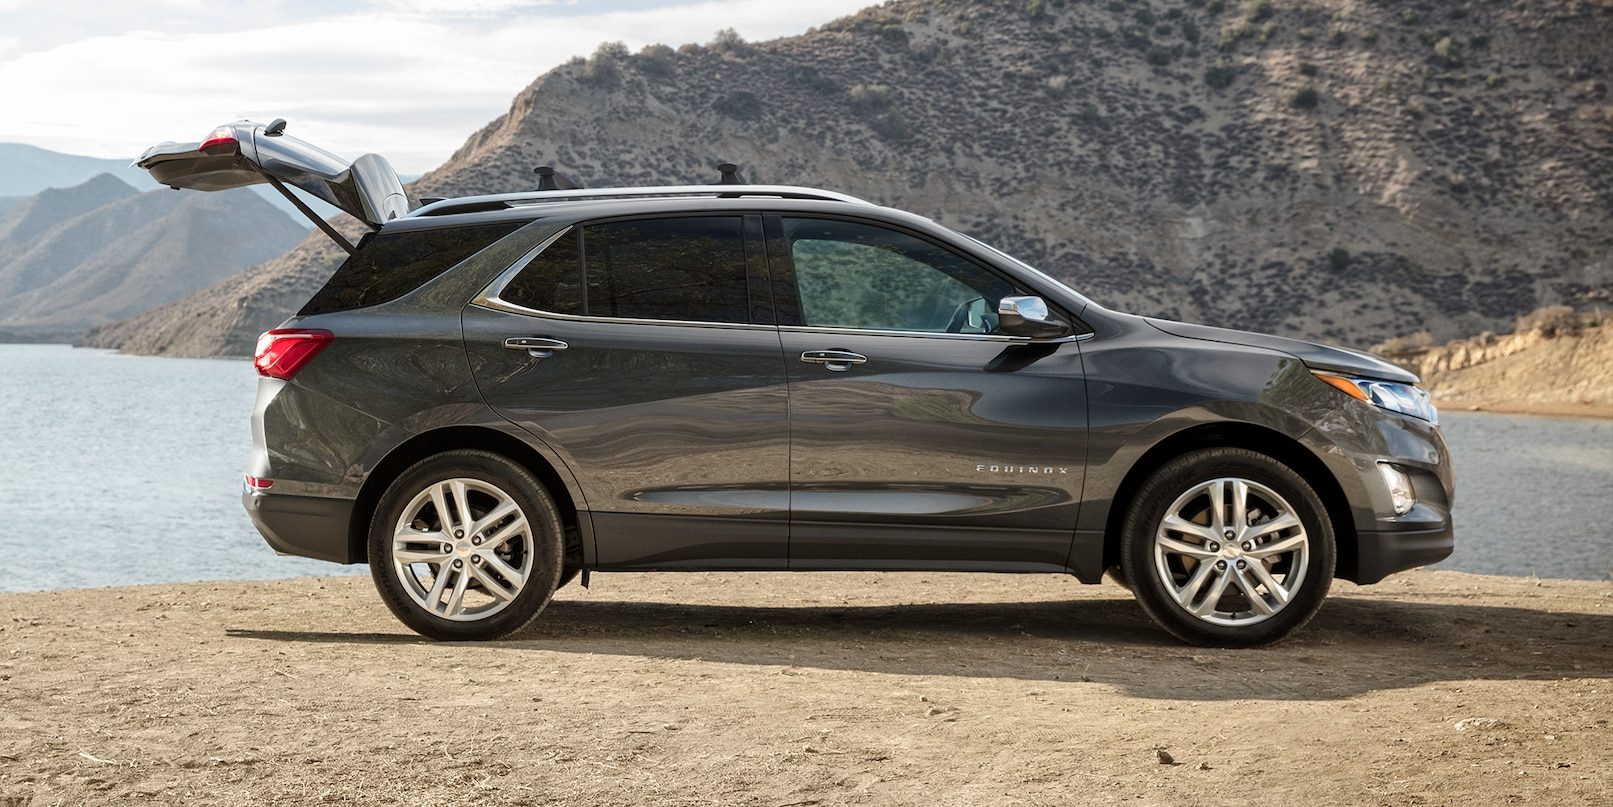 2019 Chevrolet Equinox for Sale in Watertown, SD